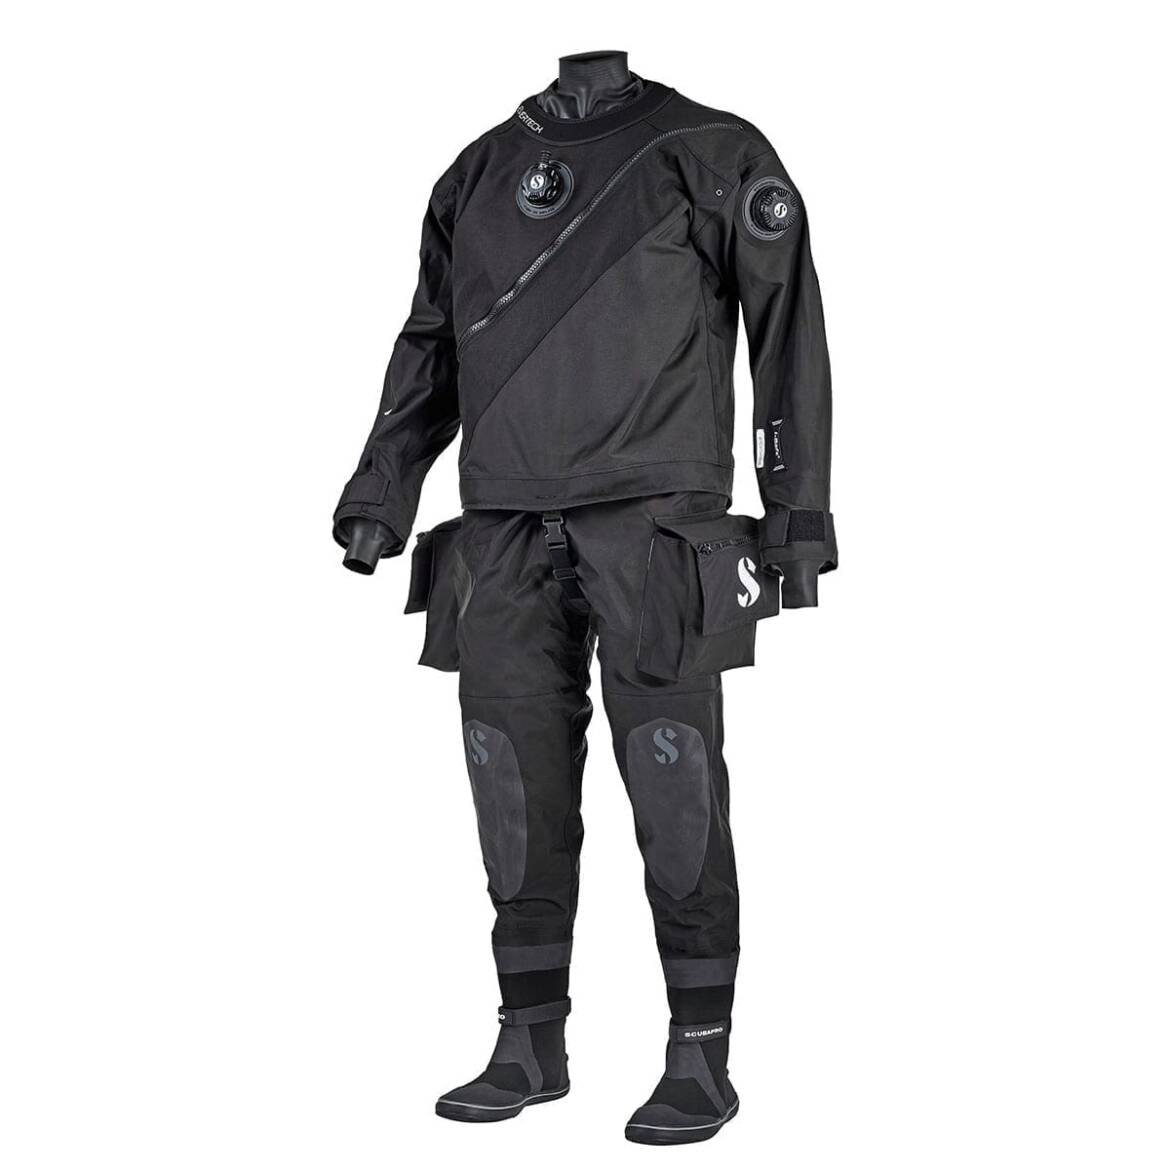 Evertech-Dry-Breathable_M_front.jpg